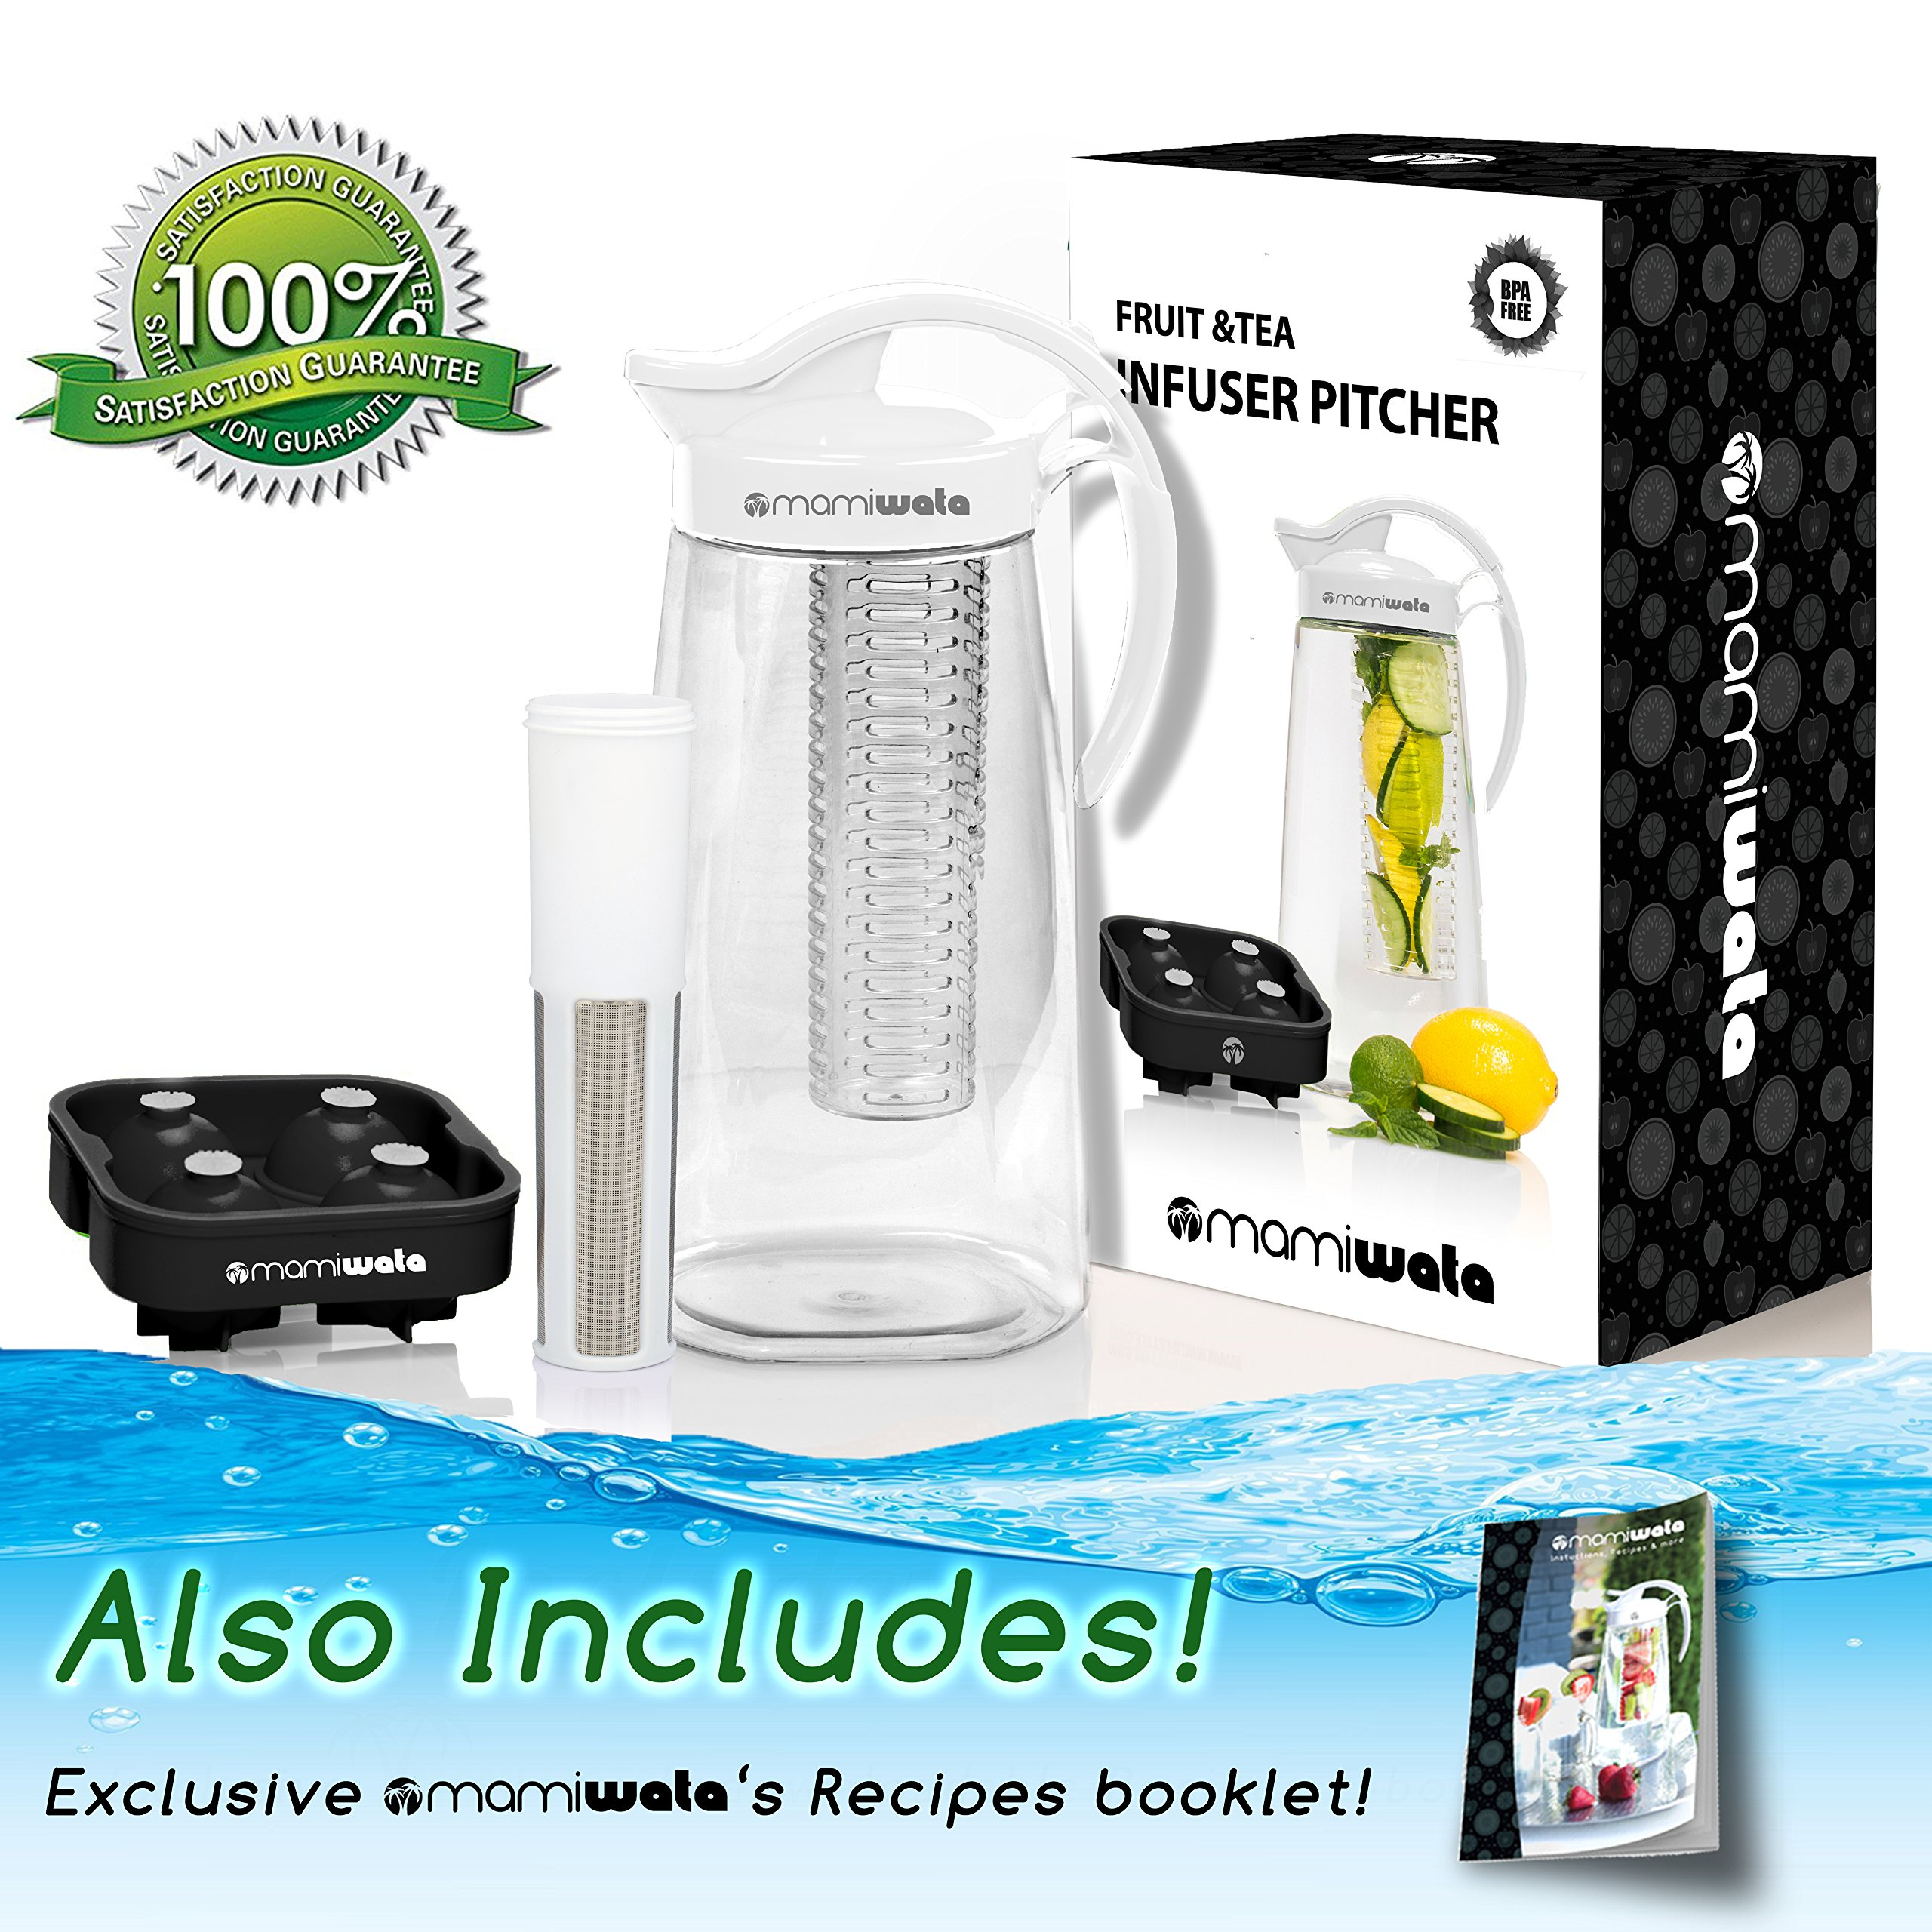 Fruit & Tea Infusion Water Pitcher - The PERFECT Mothers Day Gift - Free Ice Ball Maker - Free Infused Water Recipe Booklet - Includes Shatterproof Jug, Fruit Infuser, and Tea Infuser by MAMI WATA (Image #4)